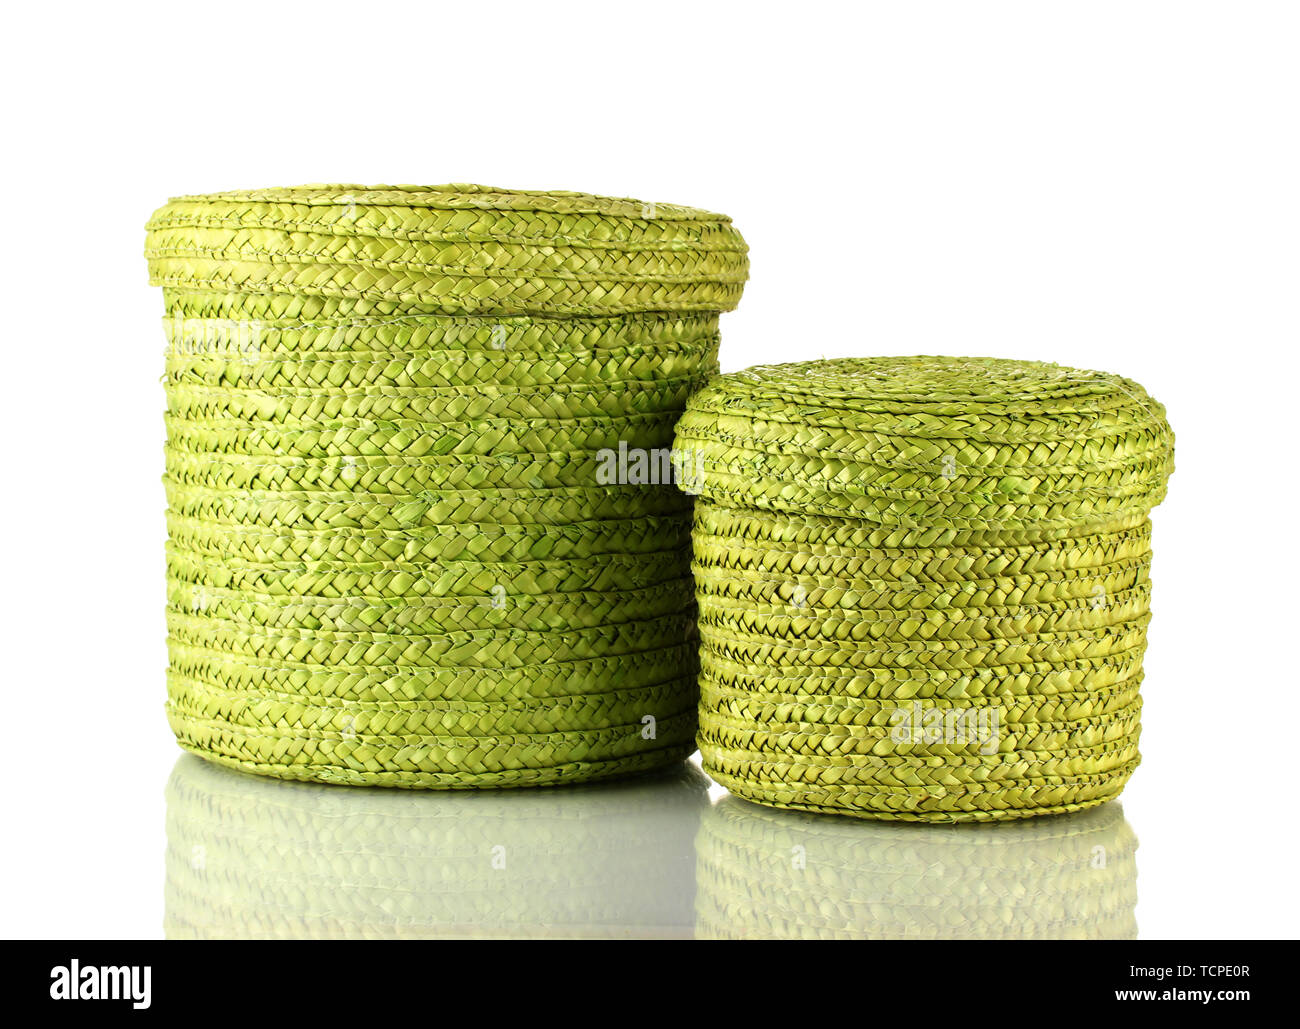 Wicker color boxes isolated on white - Stock Image